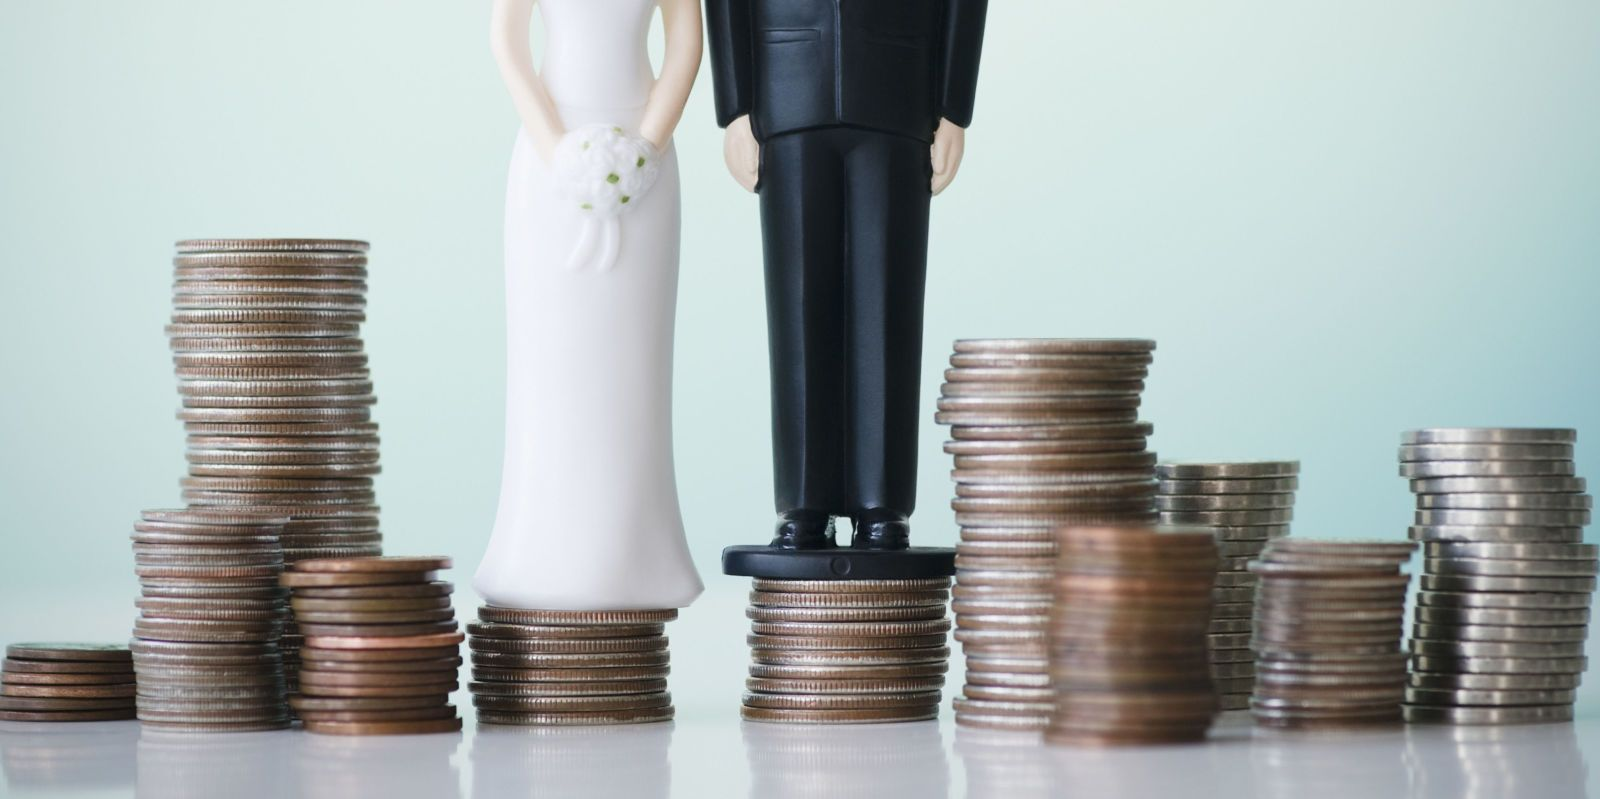 Why We Have Separate Bank Accounts Wedding costs